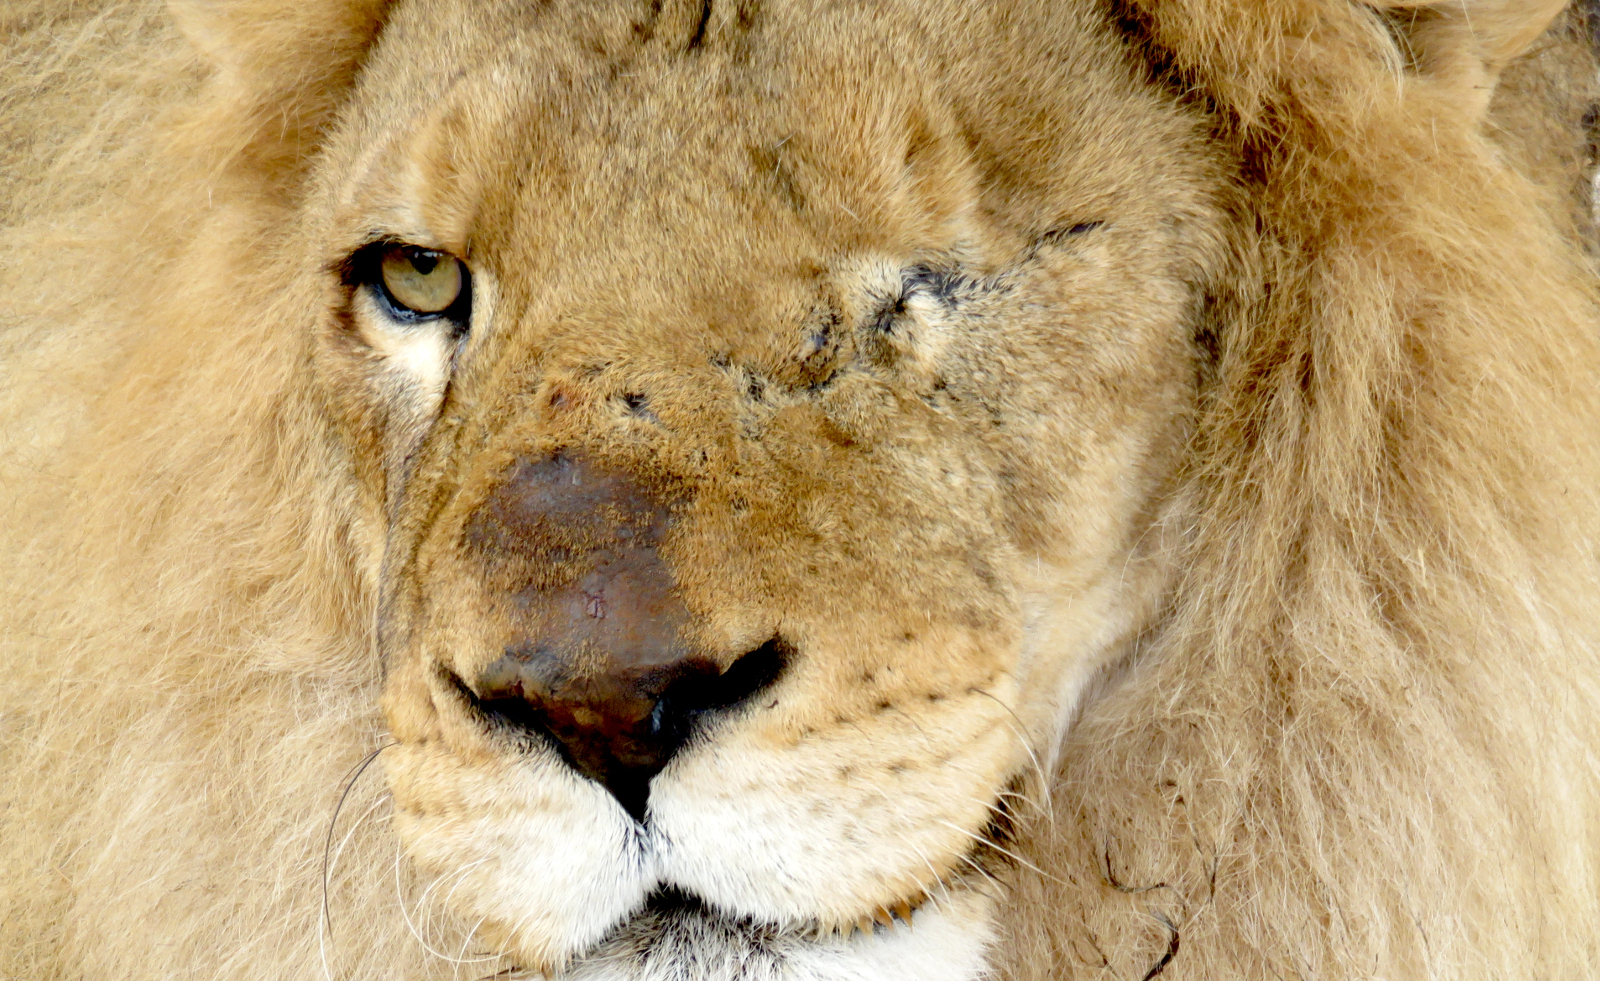 g Rescued lion Ricardo - destined for Africa